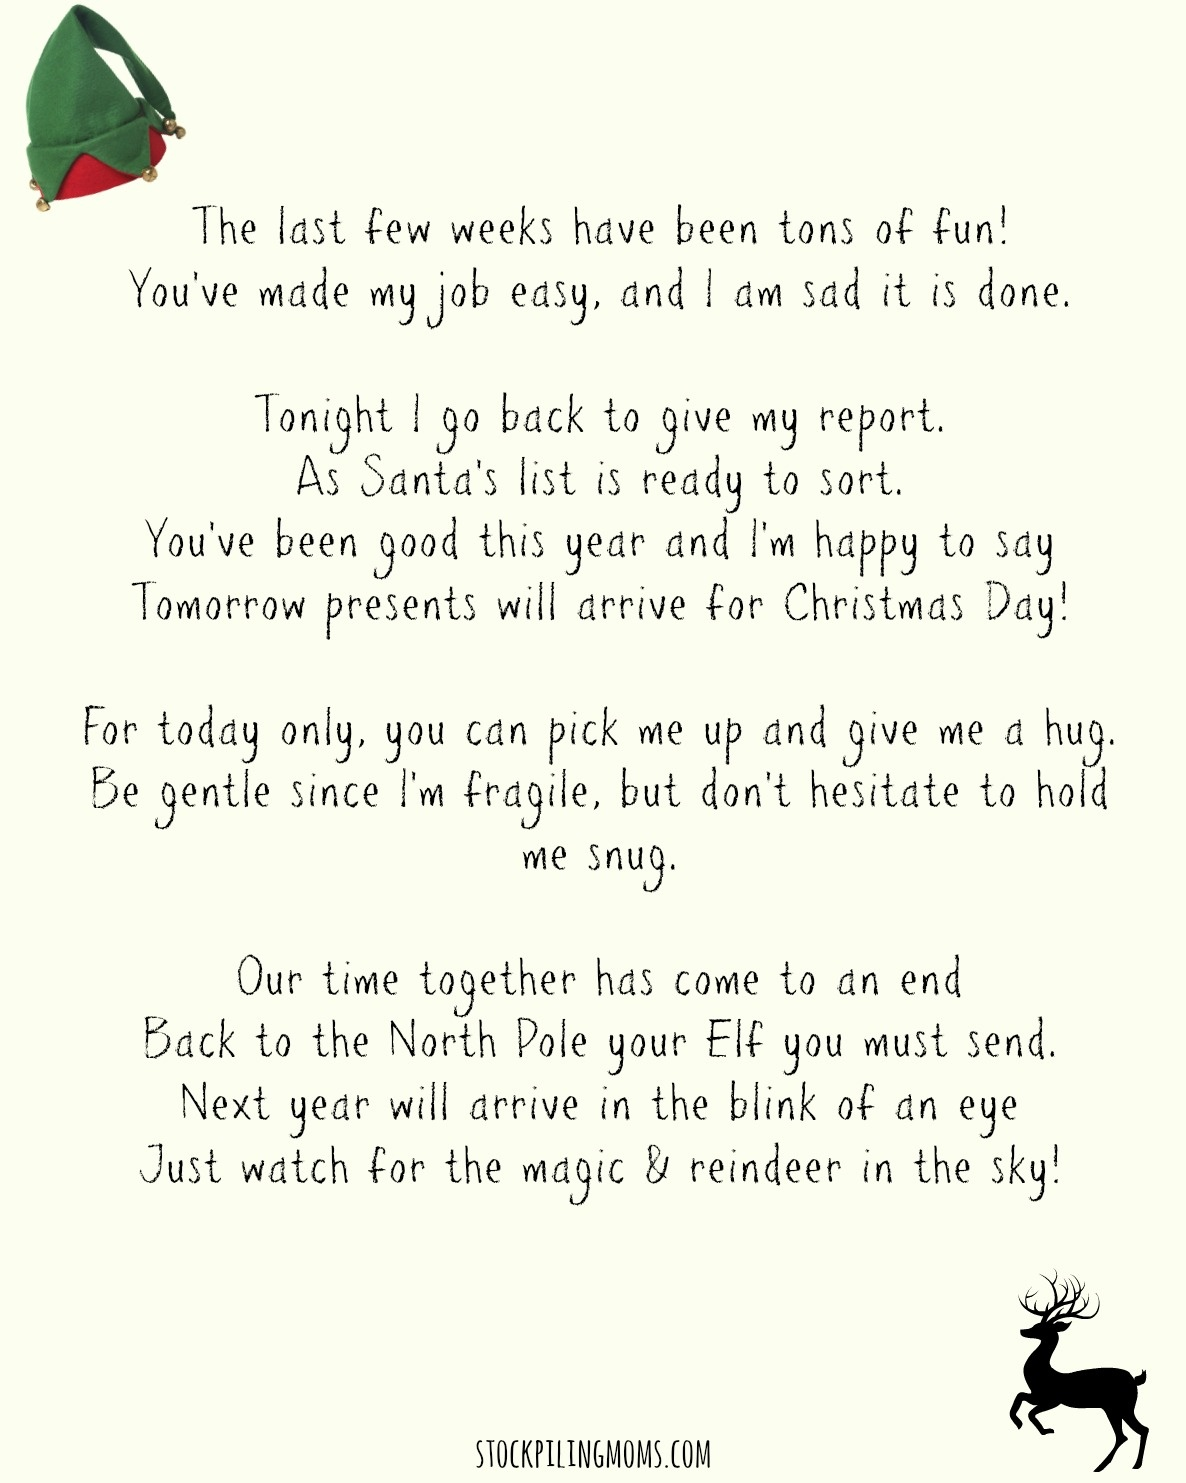 Elf On A Shelf Goodbye Letter Printable - Elf On A Shelf Goodbye Letter Free Printable